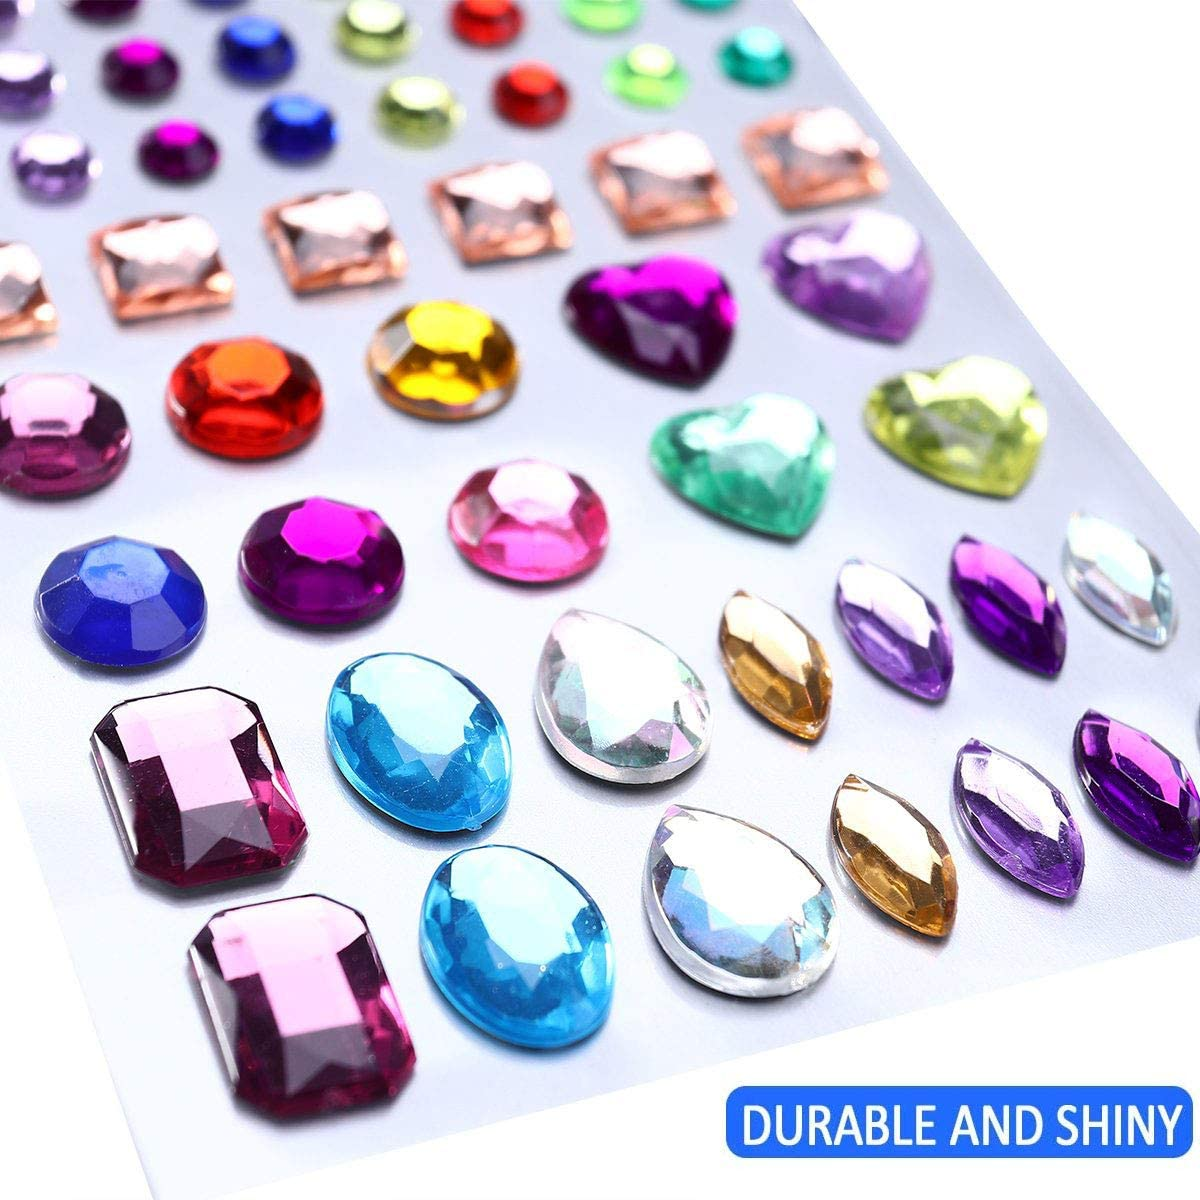 Square Round and Heart Shaped. Assorted Colors Unique Store 6 Sheets 486pcs Self-Adhesive Rhinestone Stickers Stick-on Crystal Gem Sheets for DIY Crafts Decoration